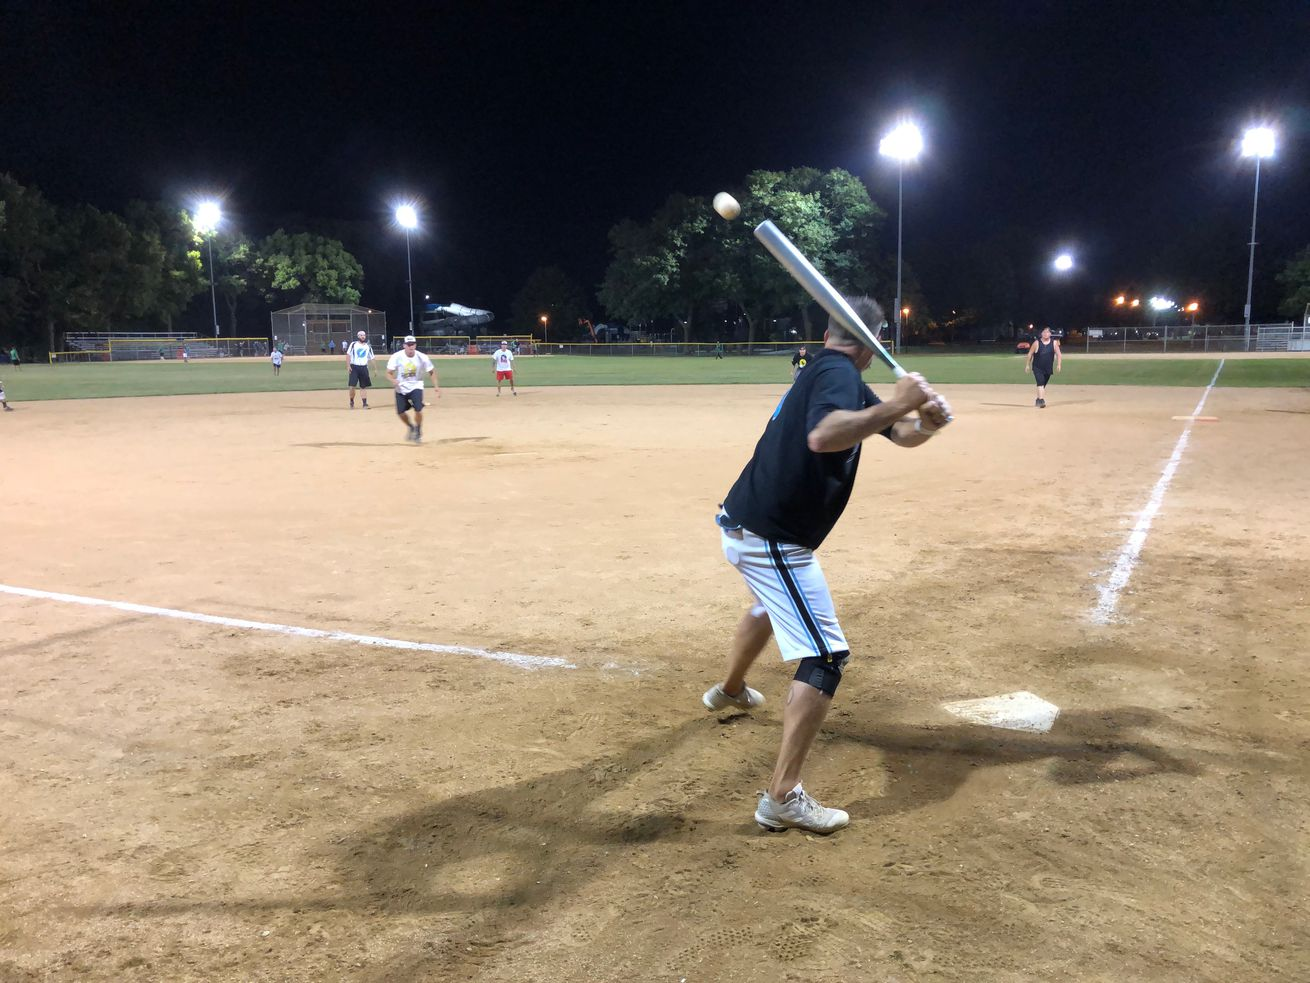 Ralph Lawrence of the Flashback team prepares to swing at a pitch from opposing Hexx at an Aug. 12, 2020, game in Forest Park.